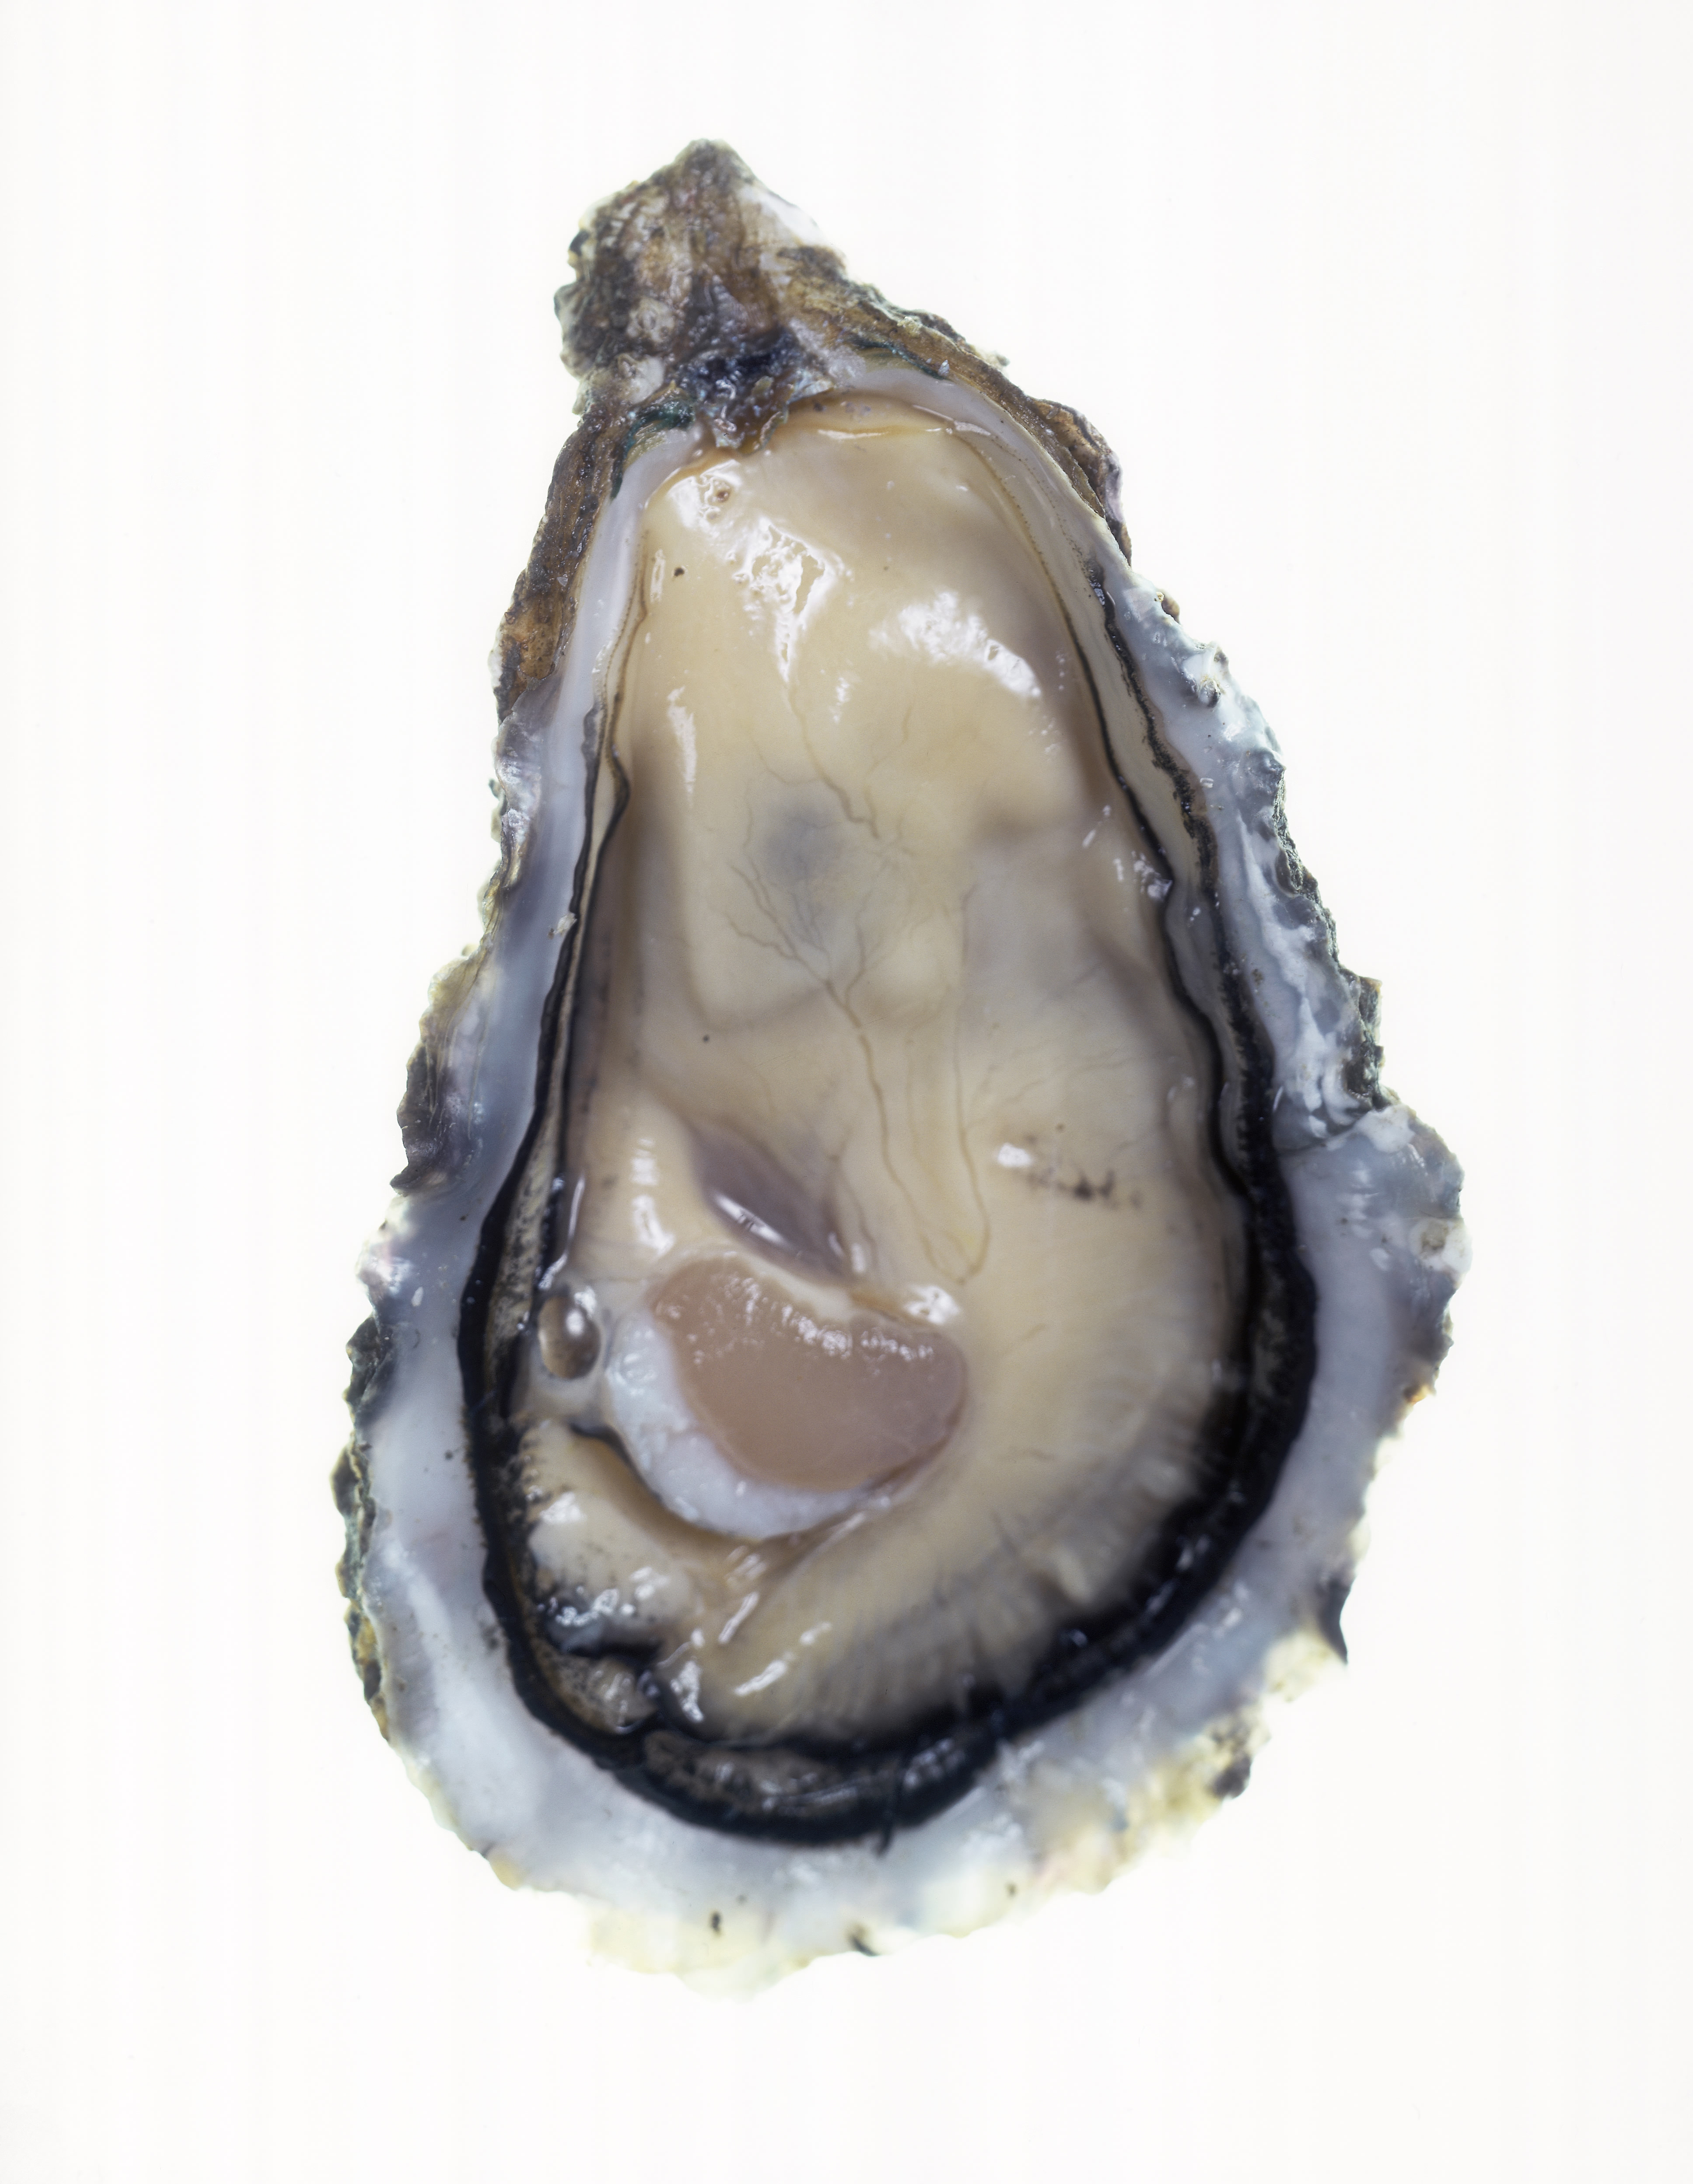 Oysters have long been considered an aphrodisiac, for both texture and shape